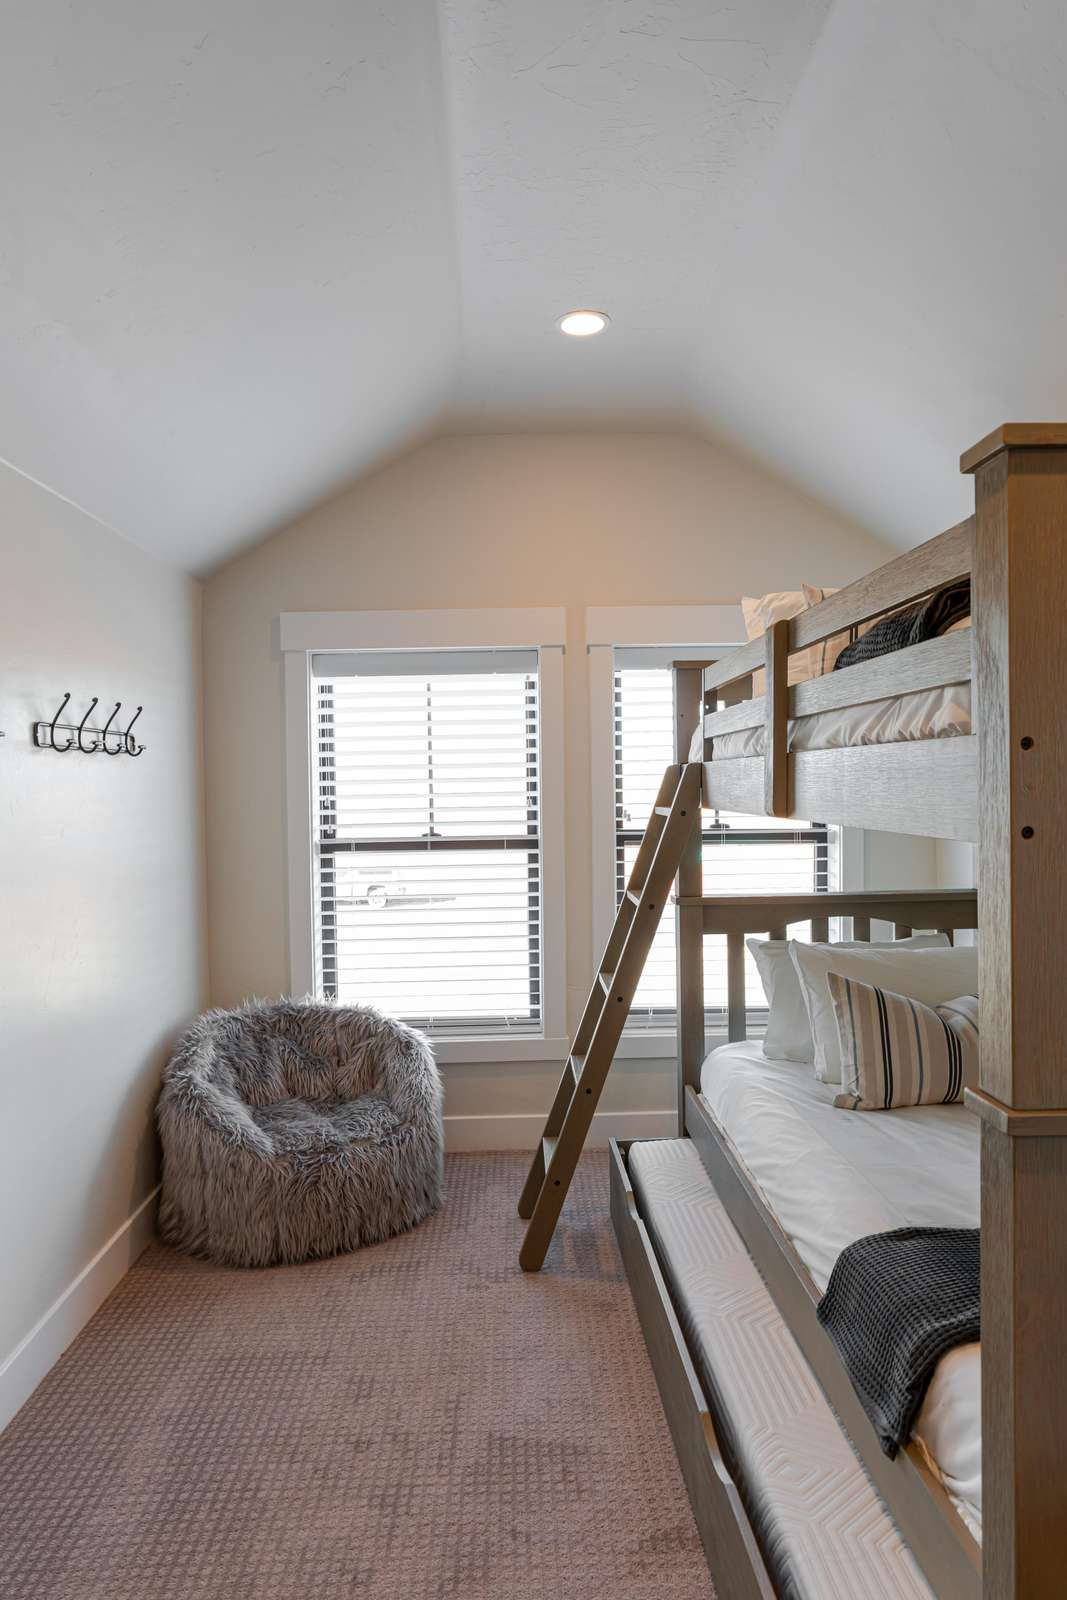 Bunkbeds feature a pull out trundle bed